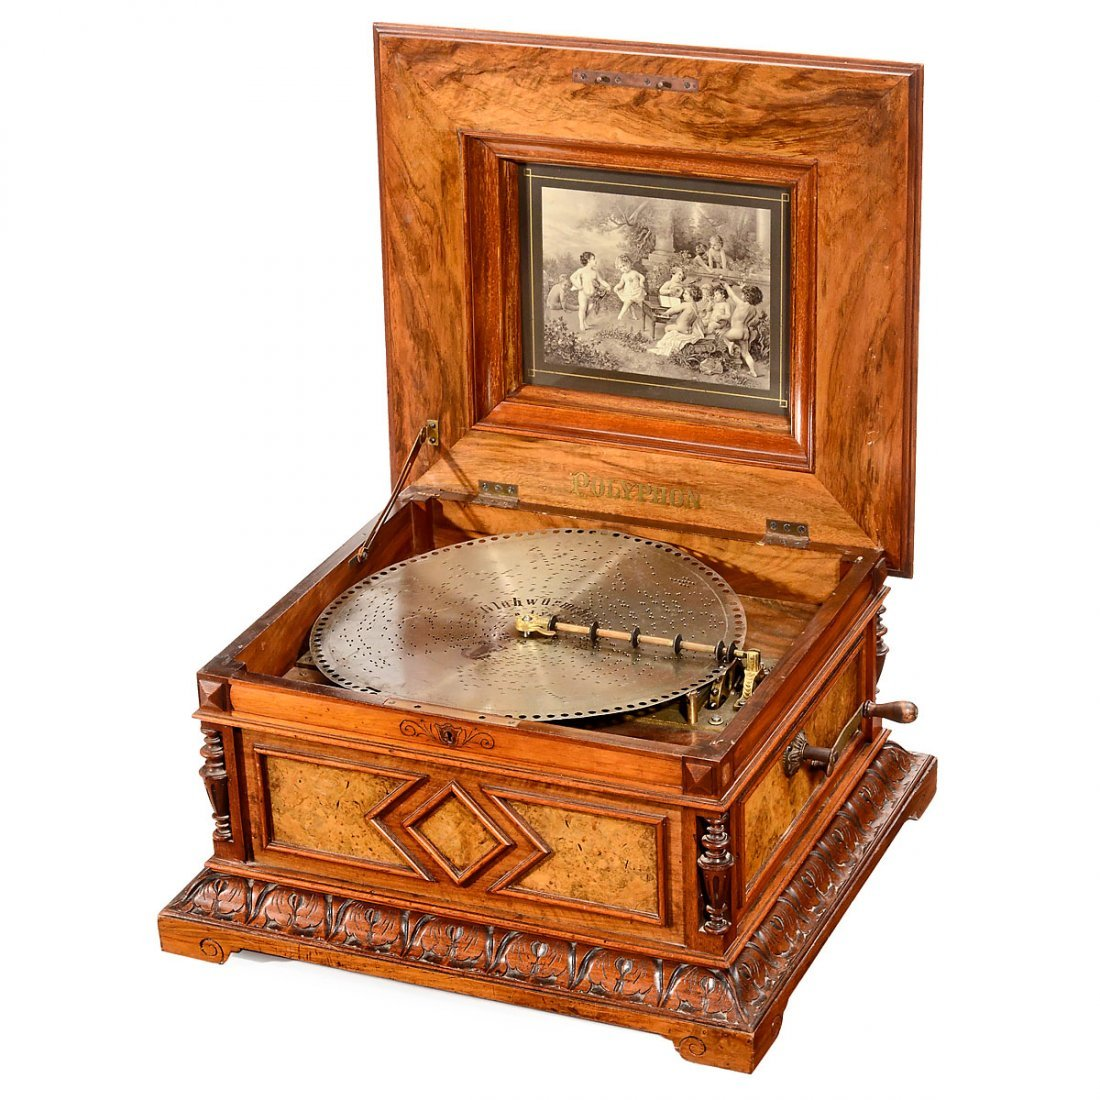 Polyphon No. 45 Disc Musical Box with 10 Discs, c. 1905